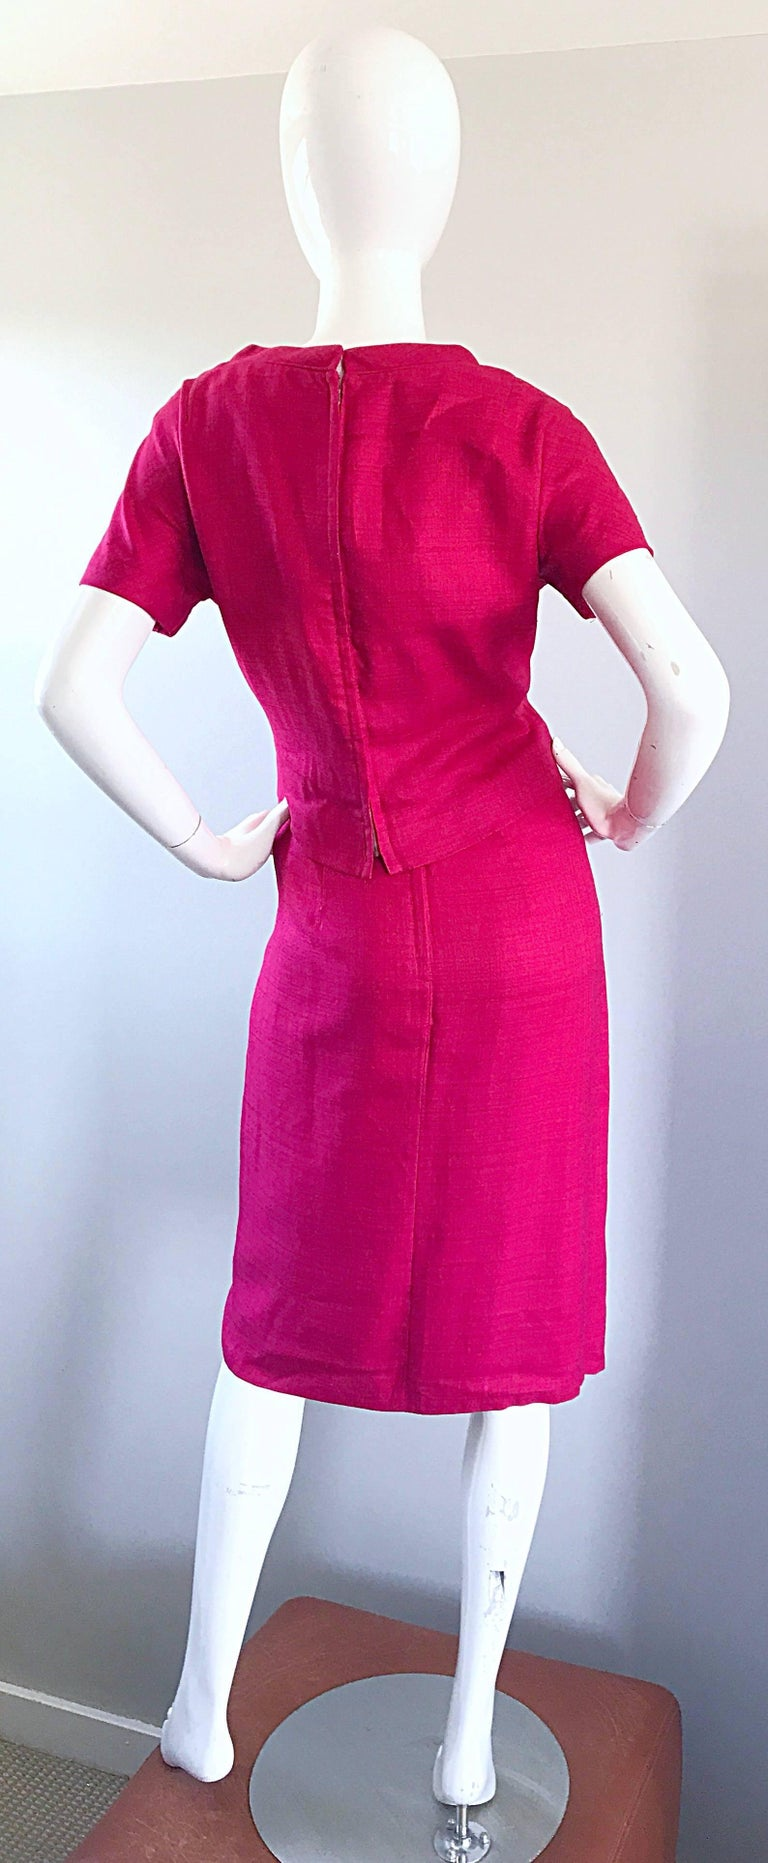 Chic 1960s Demi Couture Raspeberry Pink Silk Shift Dress and Top Vintage 60s Set 9